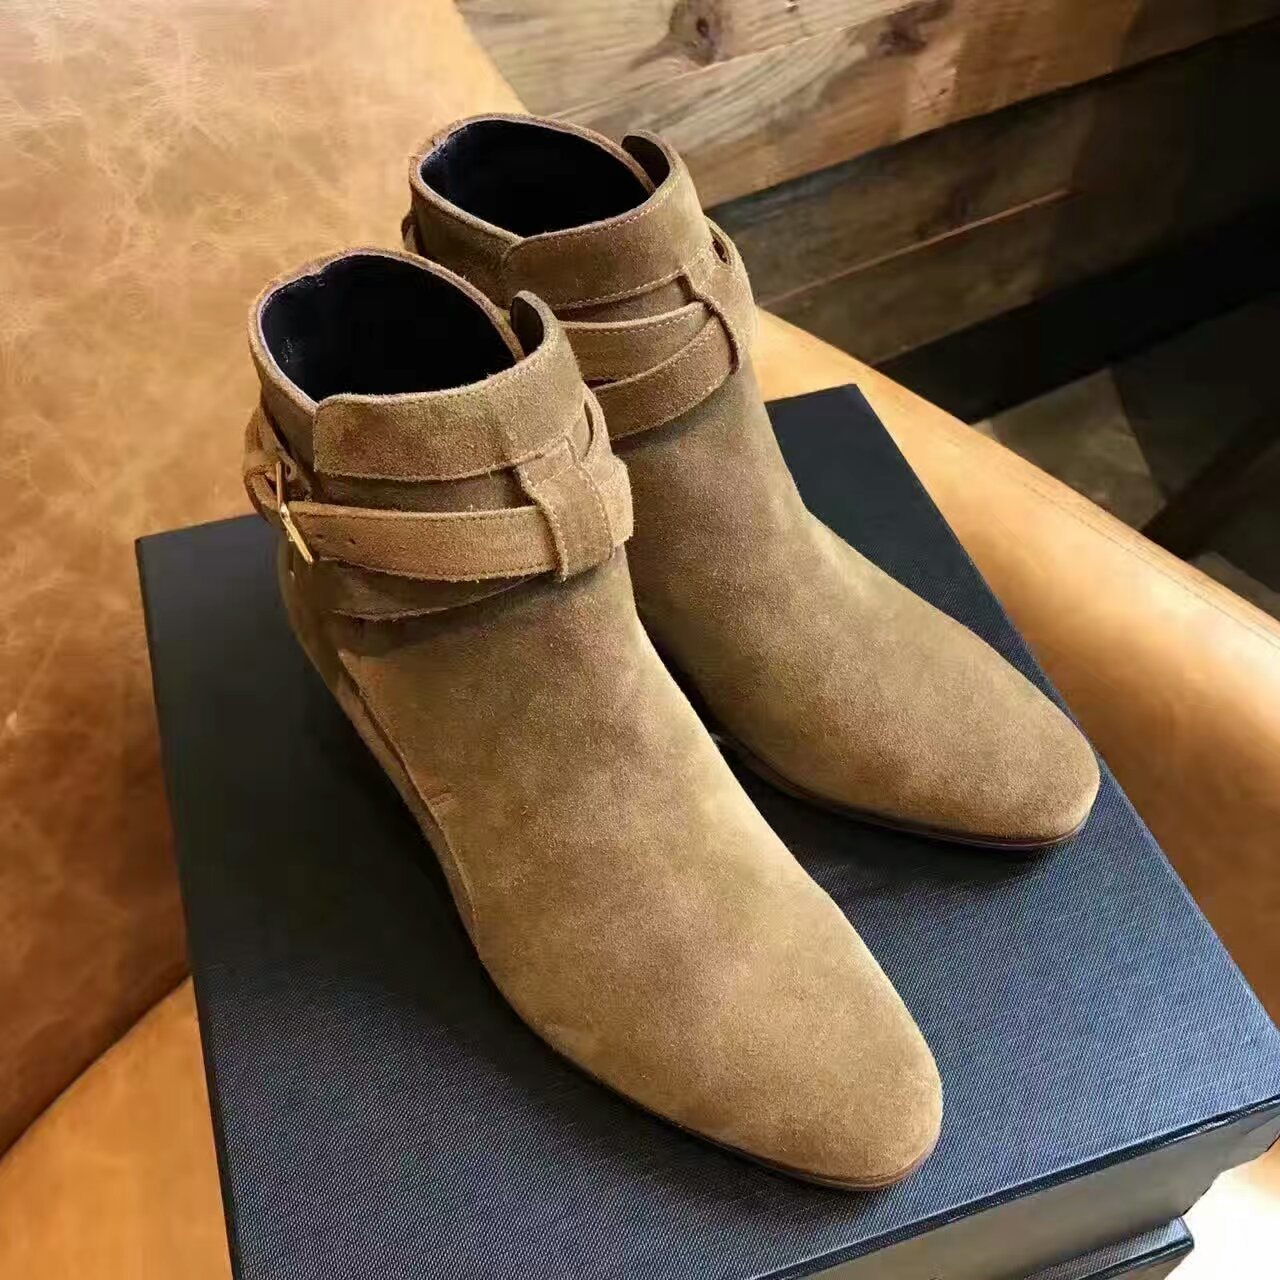 代购级别 SAINT LAURENT PARIS 裸靴!!